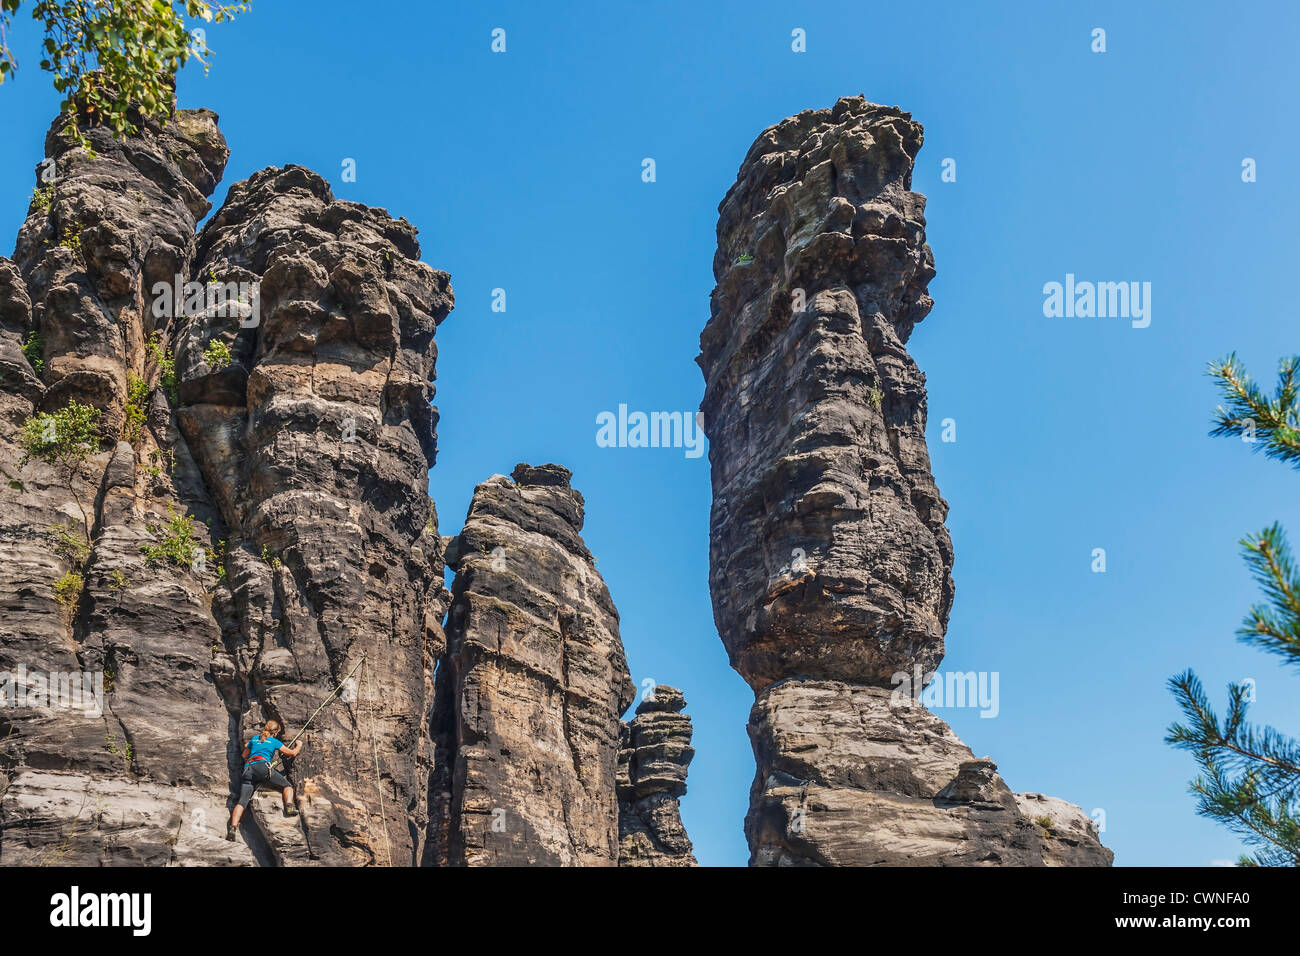 One of the pillars of Hercules, free-standing rock towers, Rosenthal Bielatal, near Dresden, Saxon Switzerland, Stock Photo